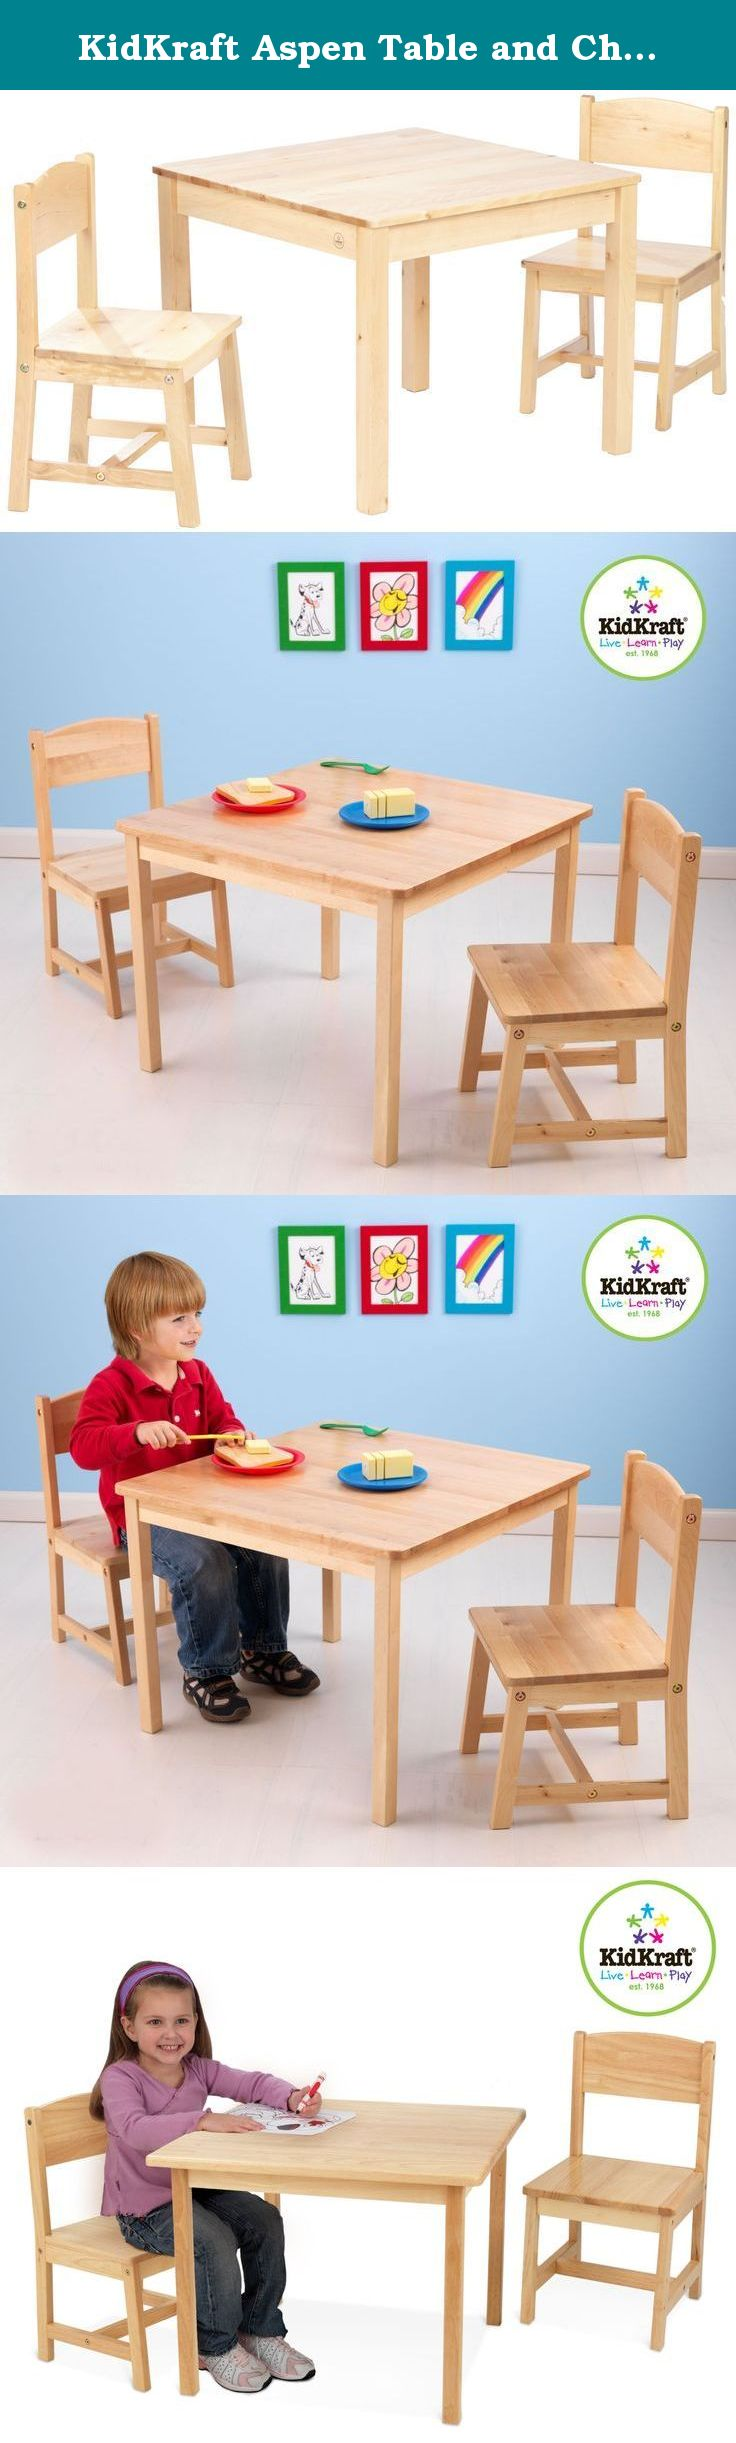 KidKraft Aspen Table and Chair Set - Natural. Every child needs ...